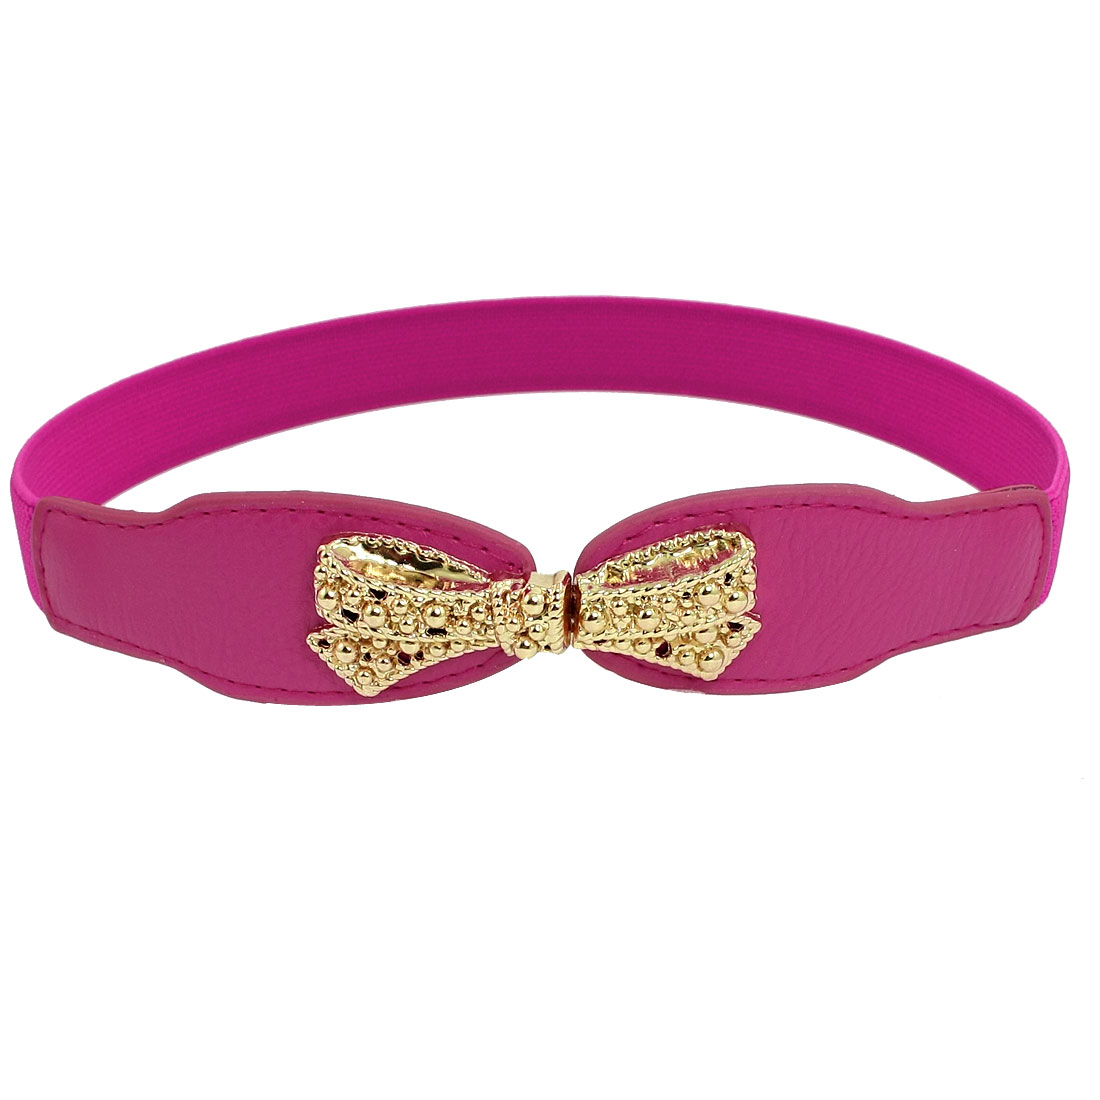 Lady Bowknot Style Interlocking Buckle Waist Belt Cinch Magenta